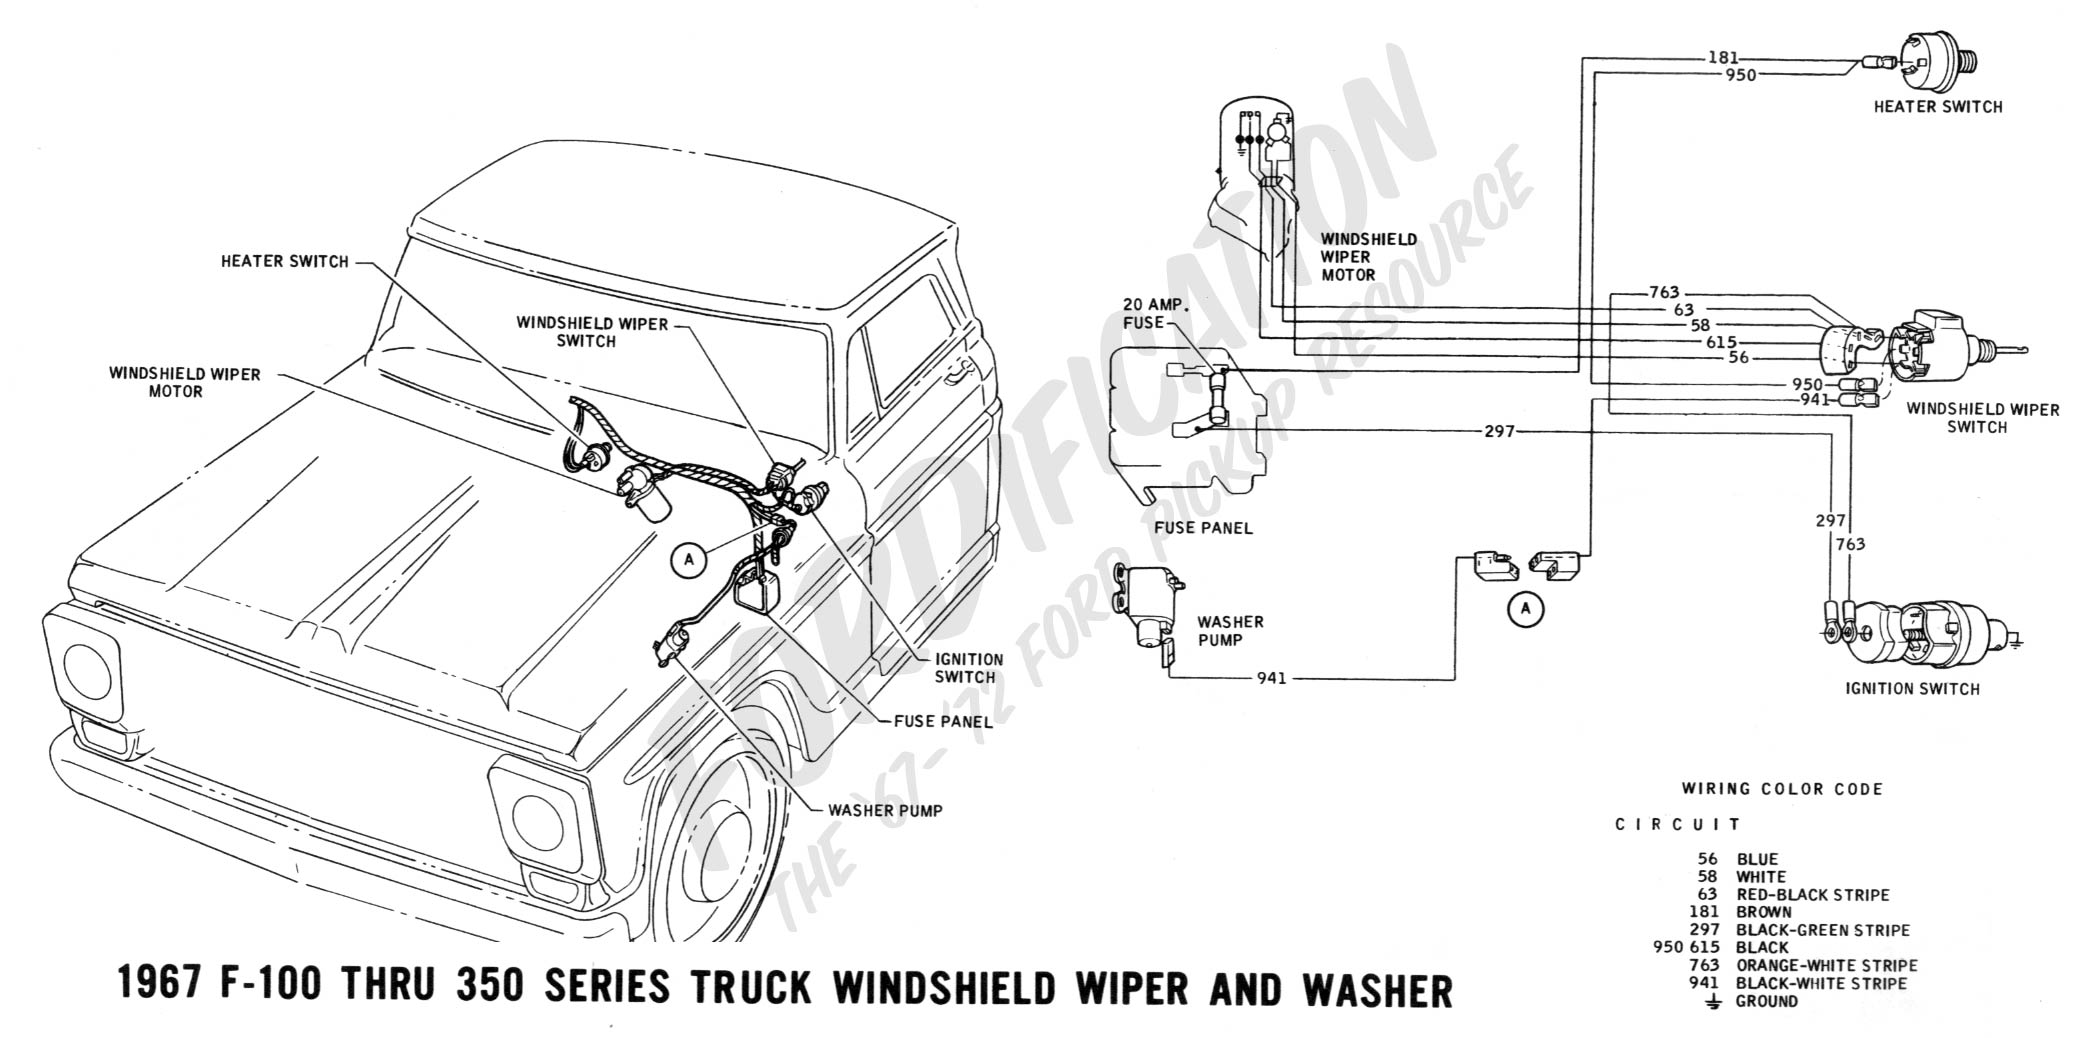 wiring 1967wipers ford truck technical drawings and schematics section h wiring 1999 ford explorer rear wiper wiring diagram at readyjetset.co